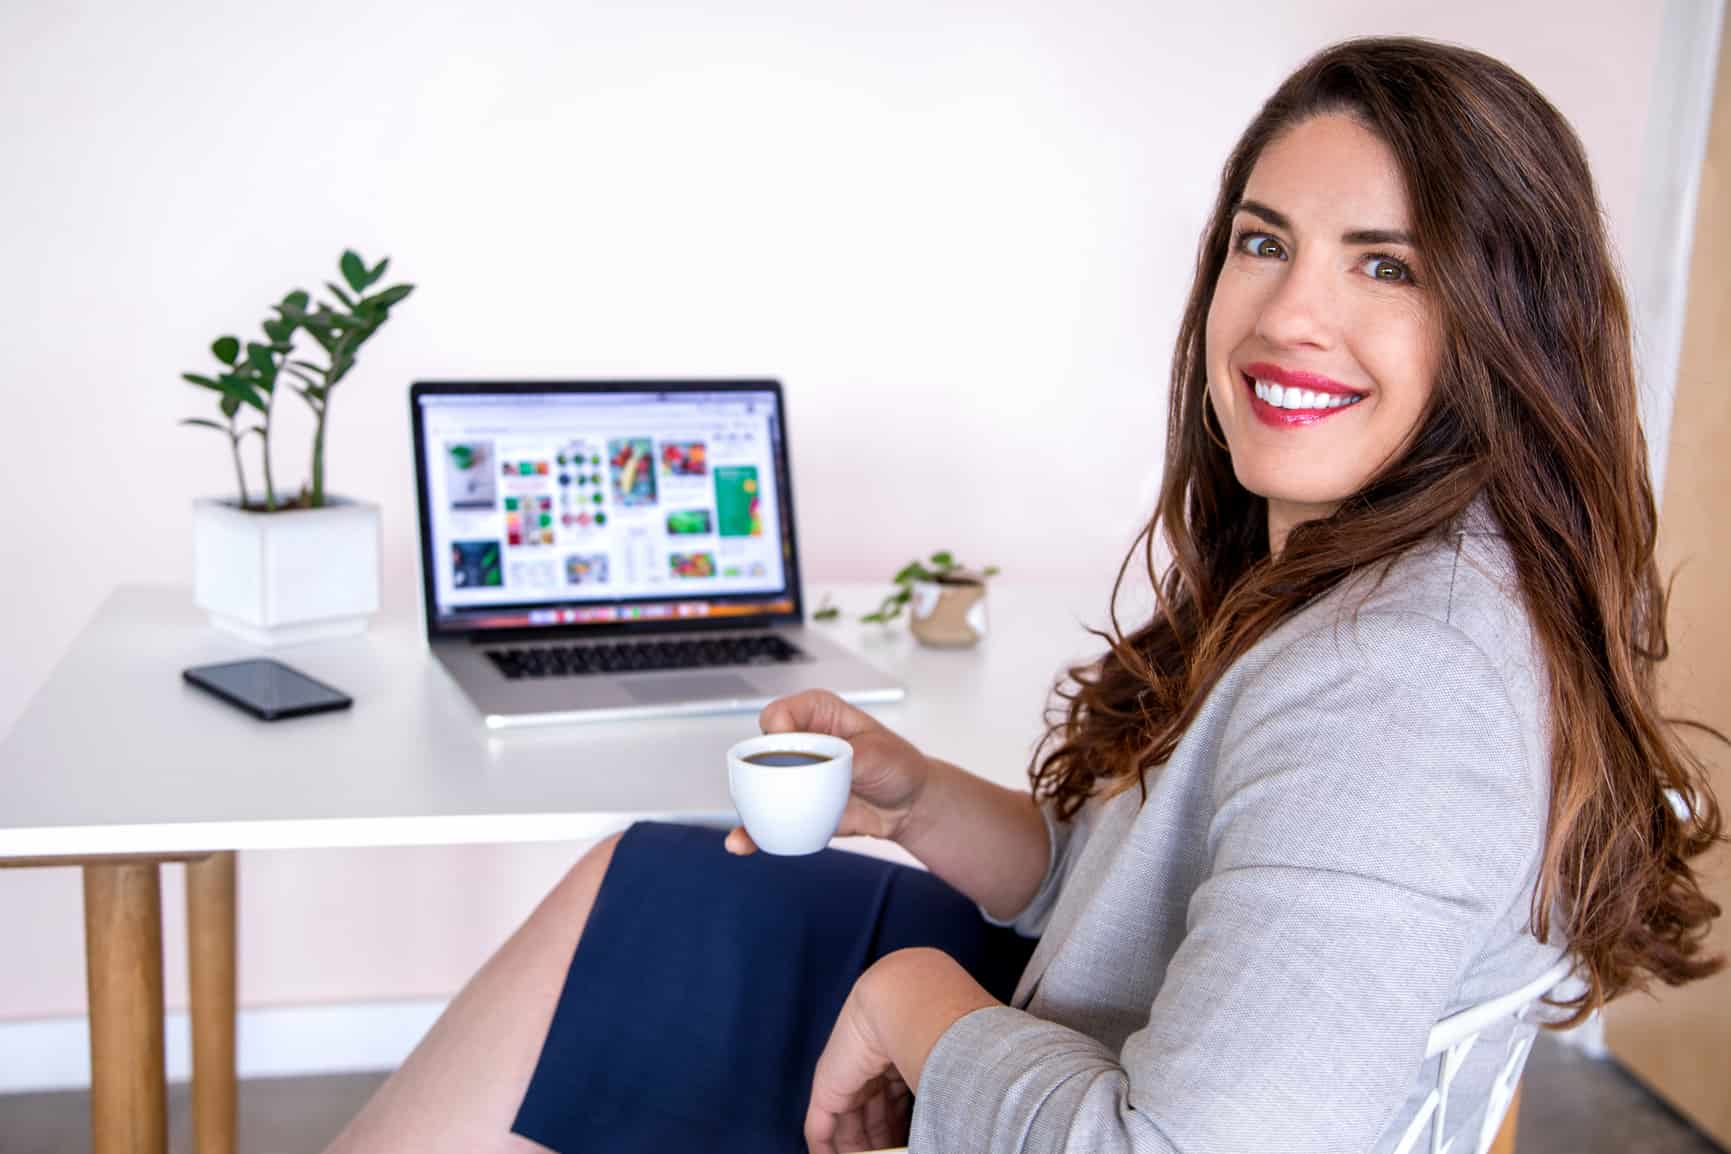 white woman with long wavy brown hair wearing a tan blazer sits at a laptop computer